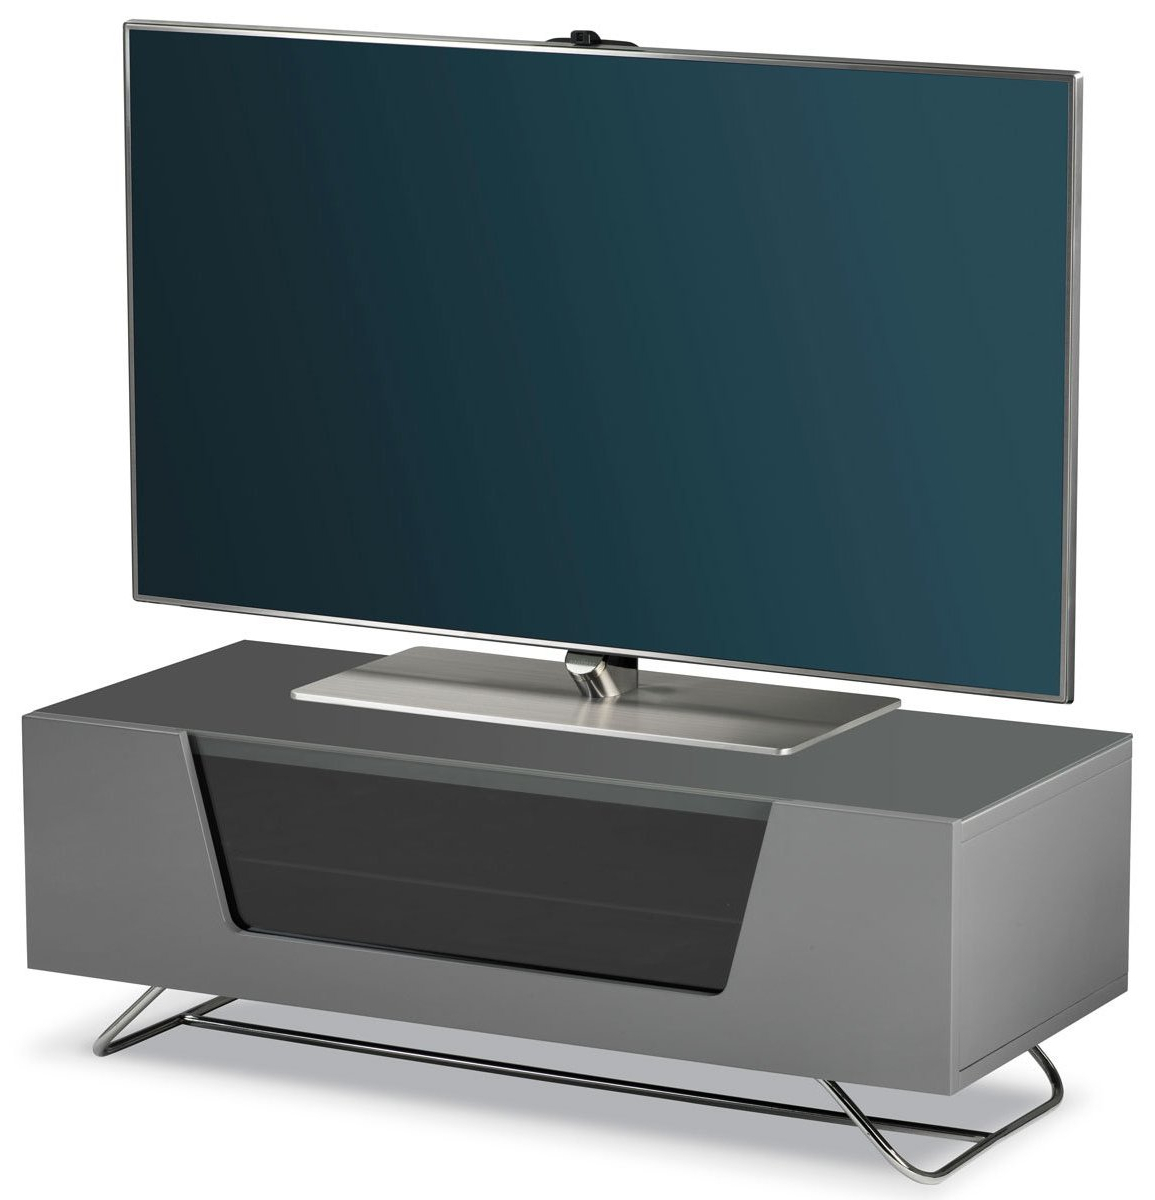 """Most Popular Alphason Chromium Grey Tv Stand For Up To 50"""" Tvs Intended For White Gloss Oval Tv Stands (View 13 of 20)"""